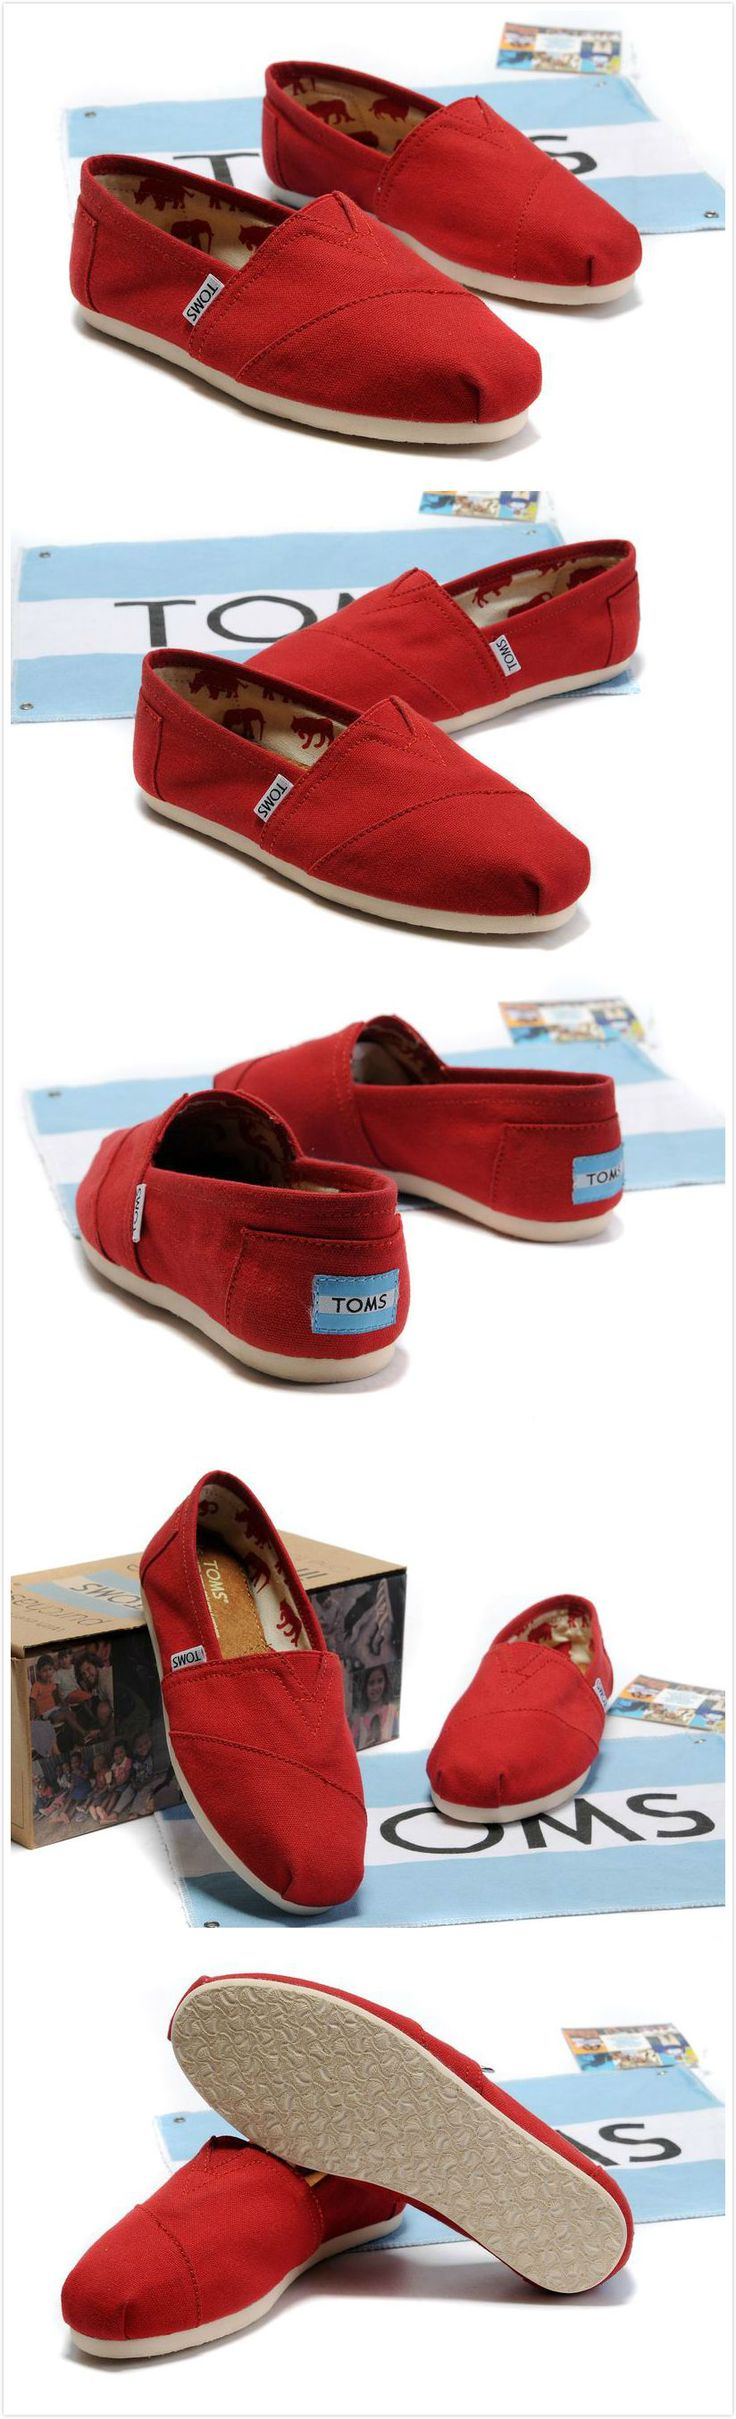 I need to replace my red toms...Love them so much wore them out